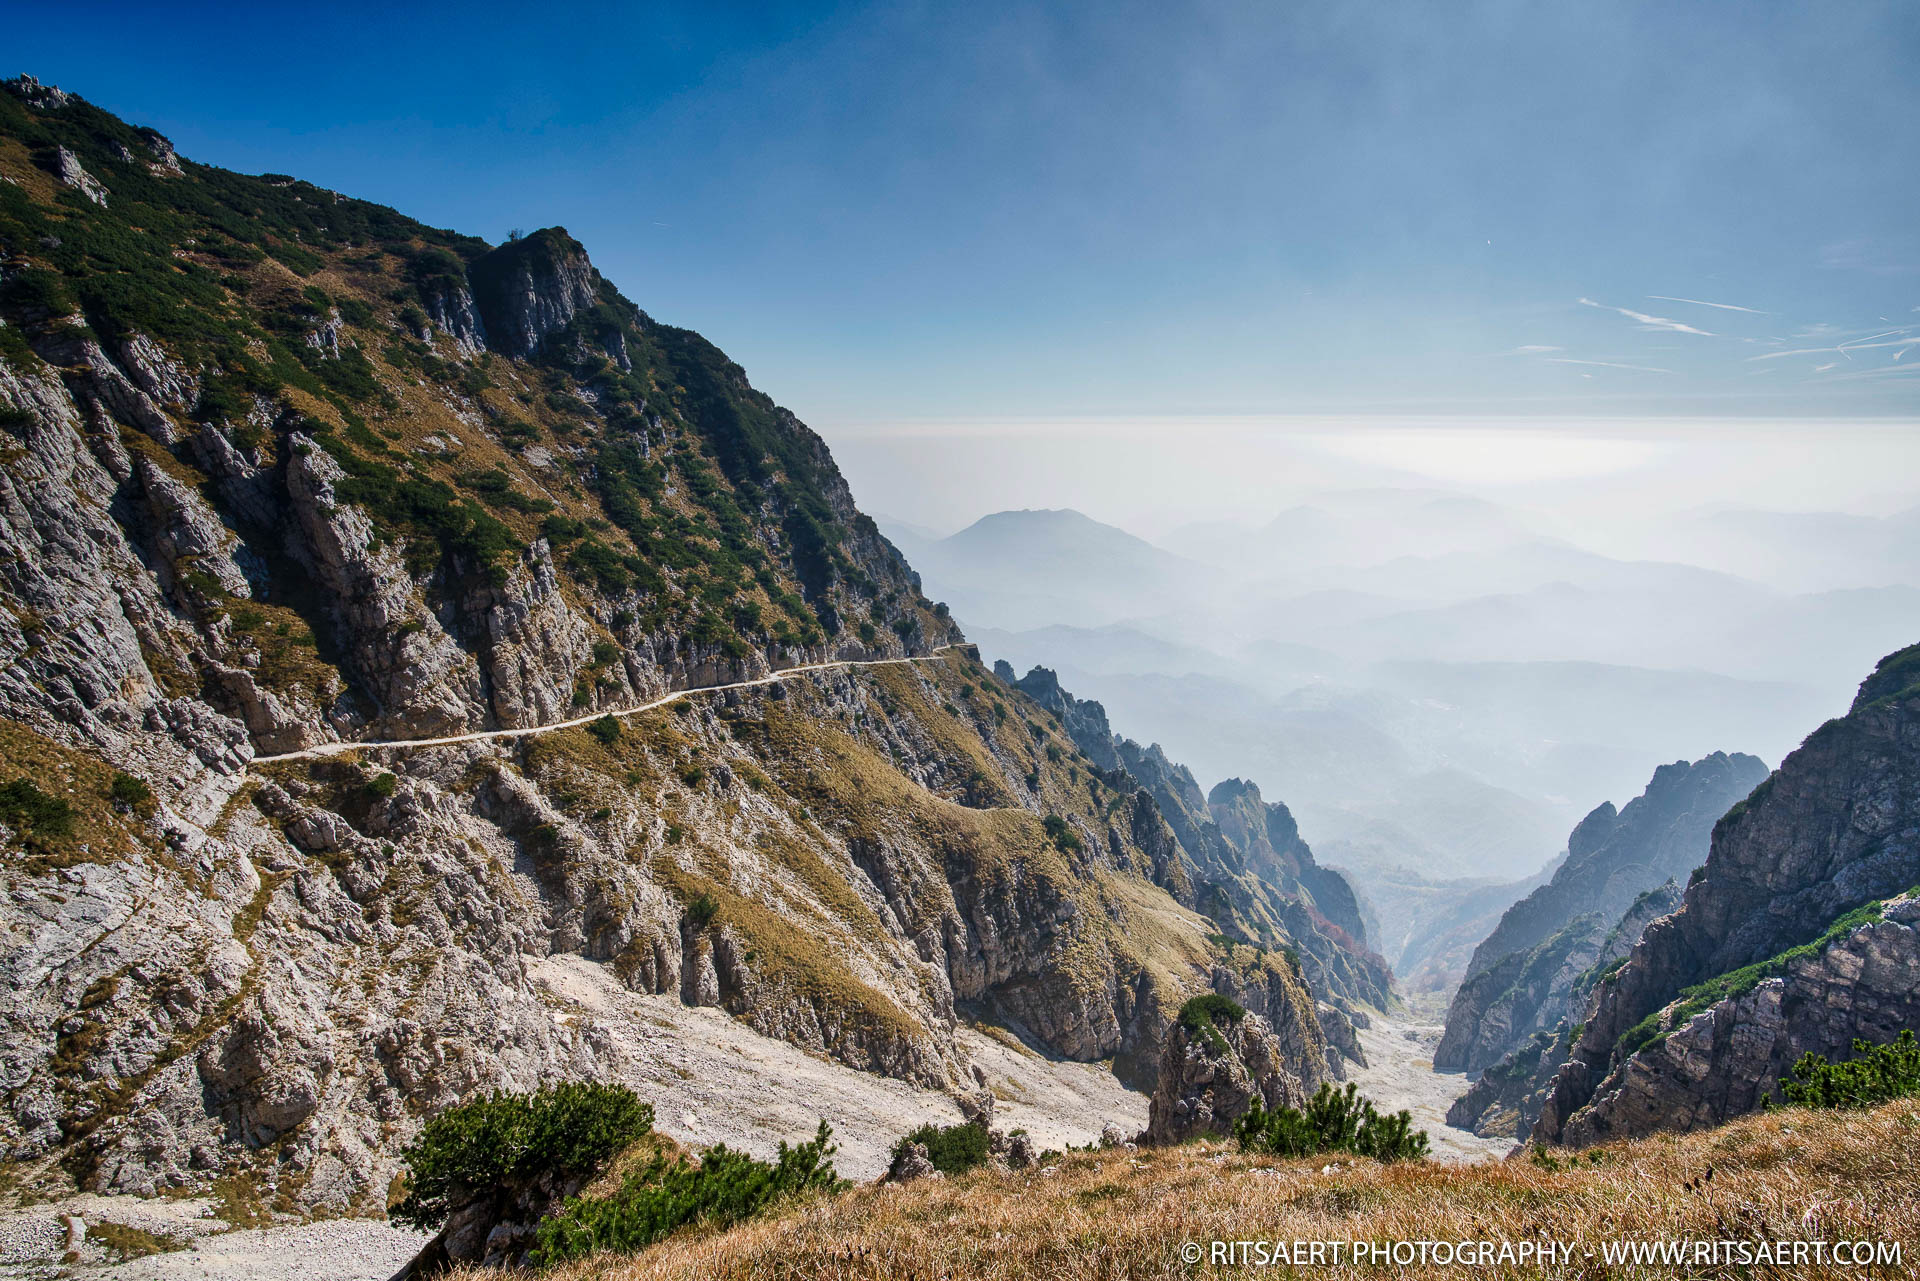 Great hike - Valli des Pasubio - Italy